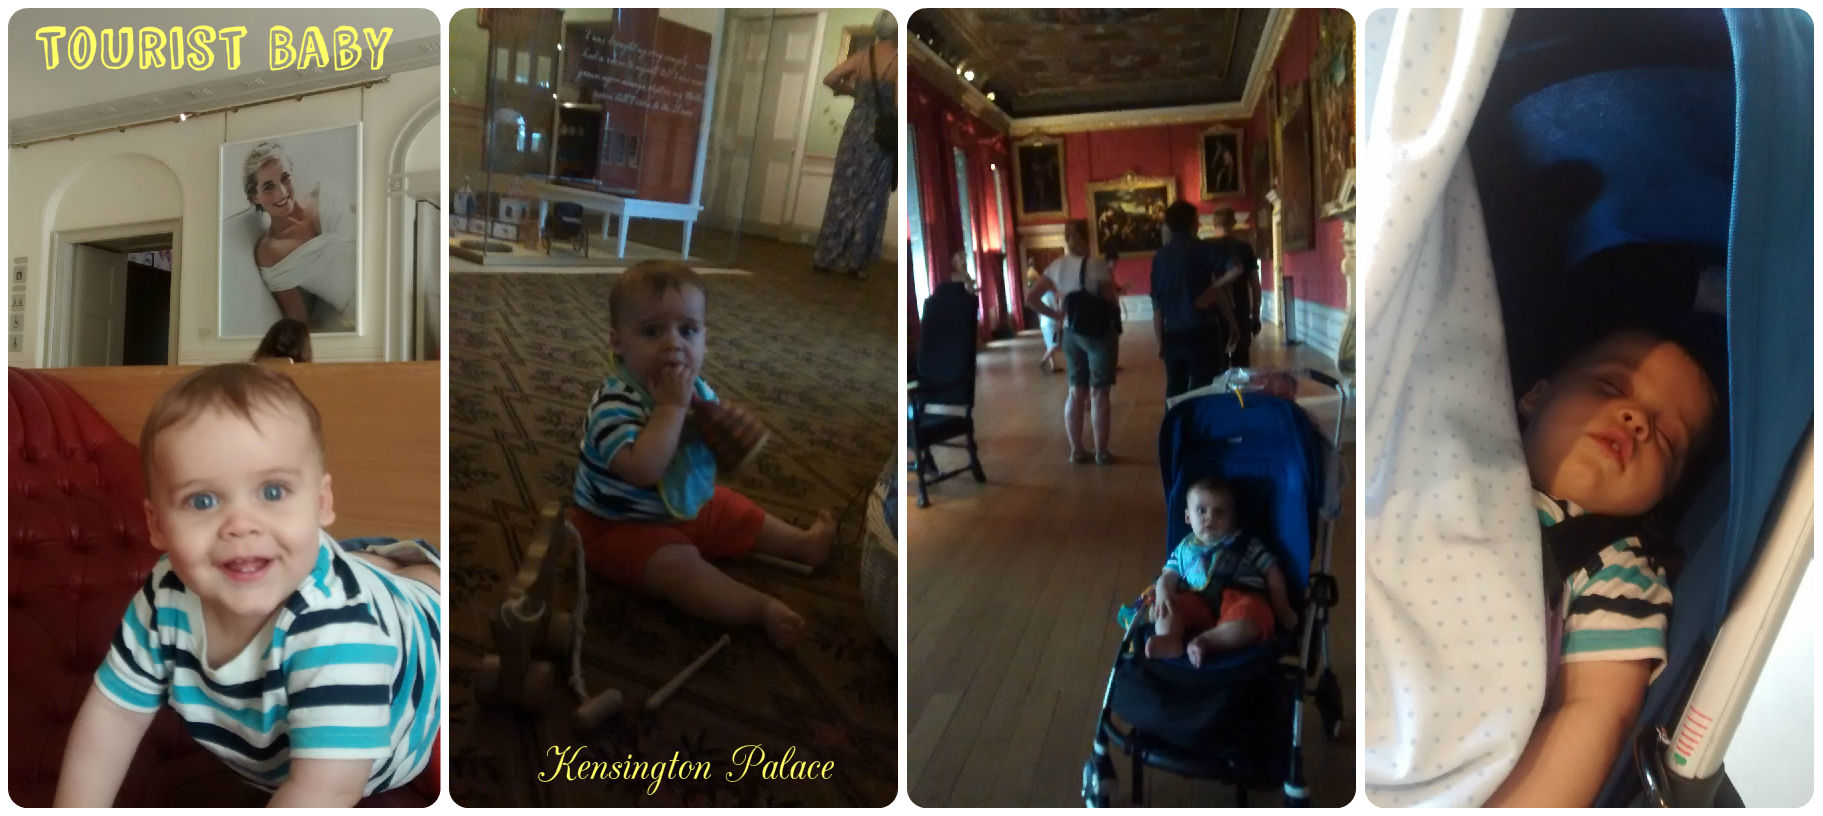 tourist baby - activity ideas with baby - Kensington Palace London UK. baby-brain.co.uk